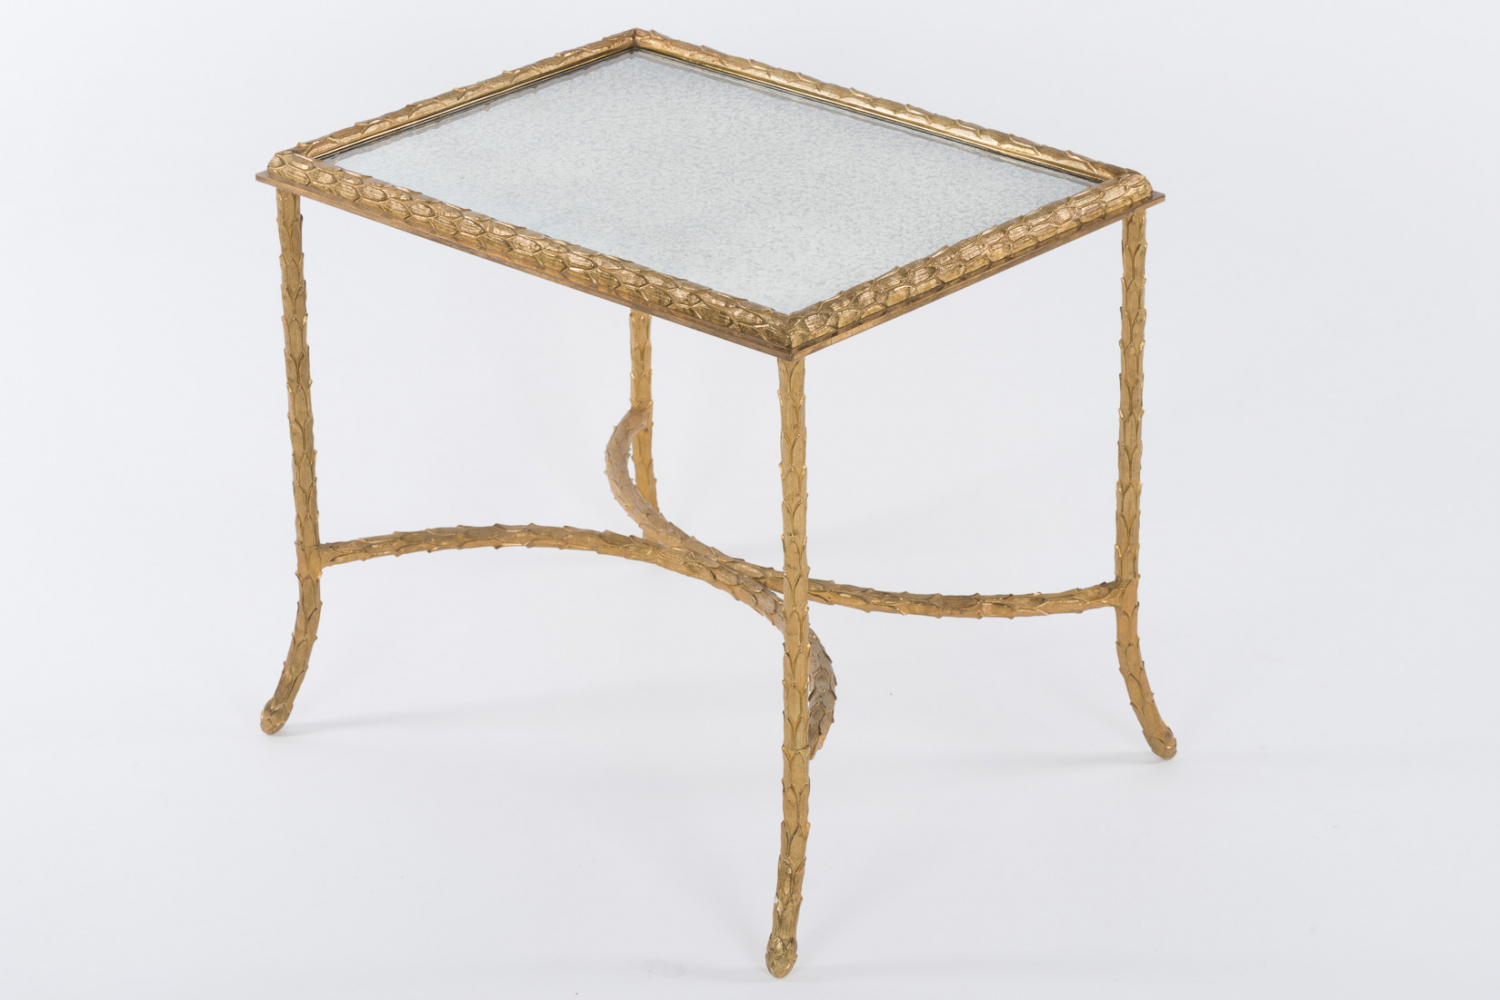 Maison Charles gilt bronze table